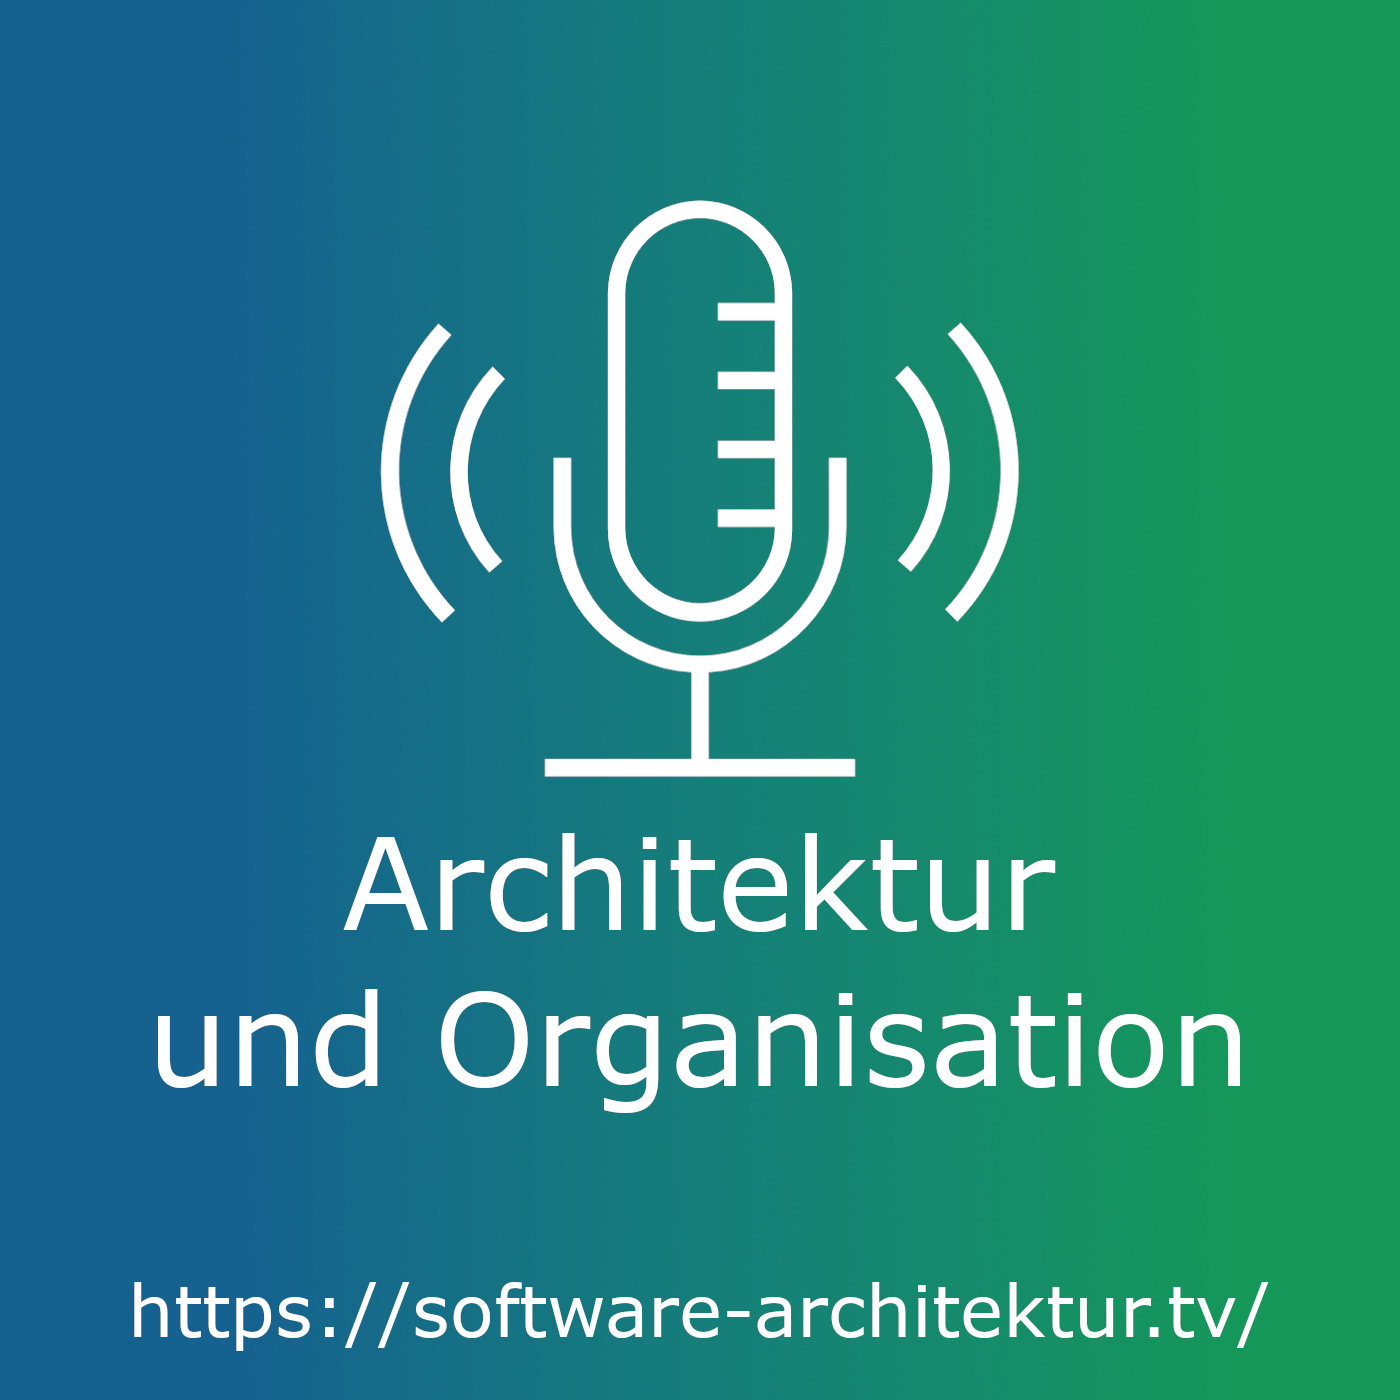 Organisation und Architektur